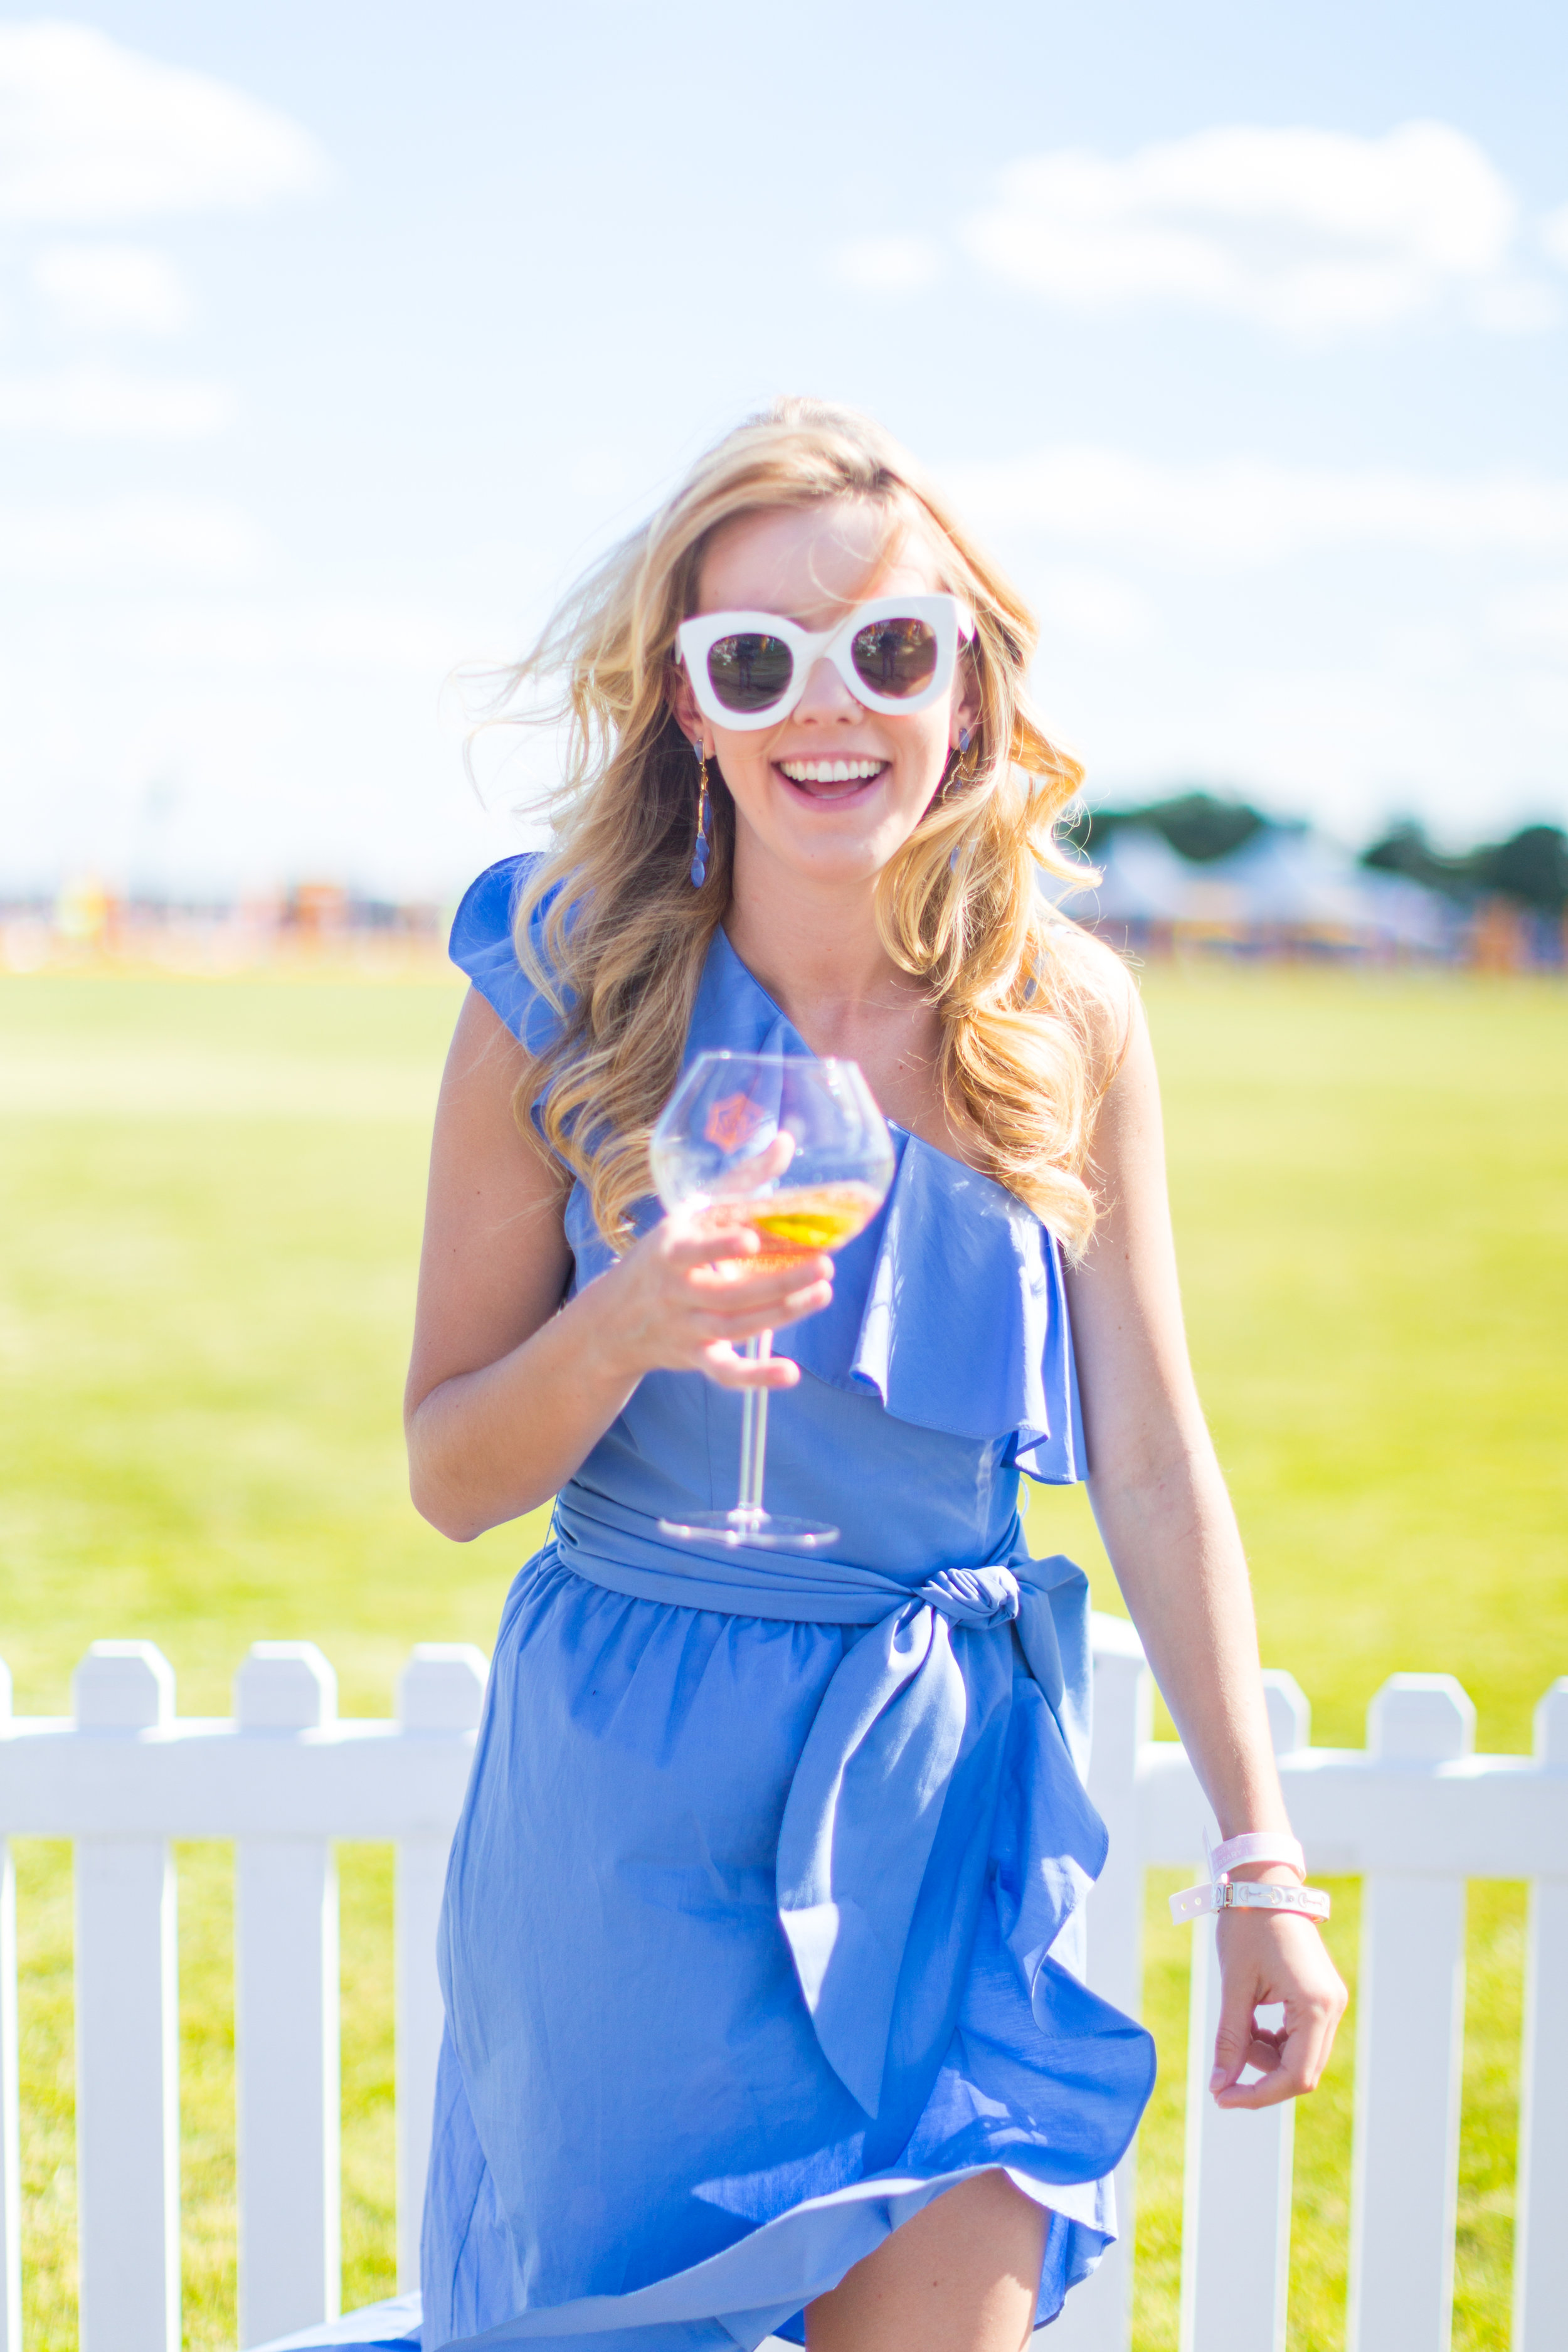 Veuve Clicquot Polo Classic NYC Summer Style Ruffled One Shoulder Blue Dress-14.jpg